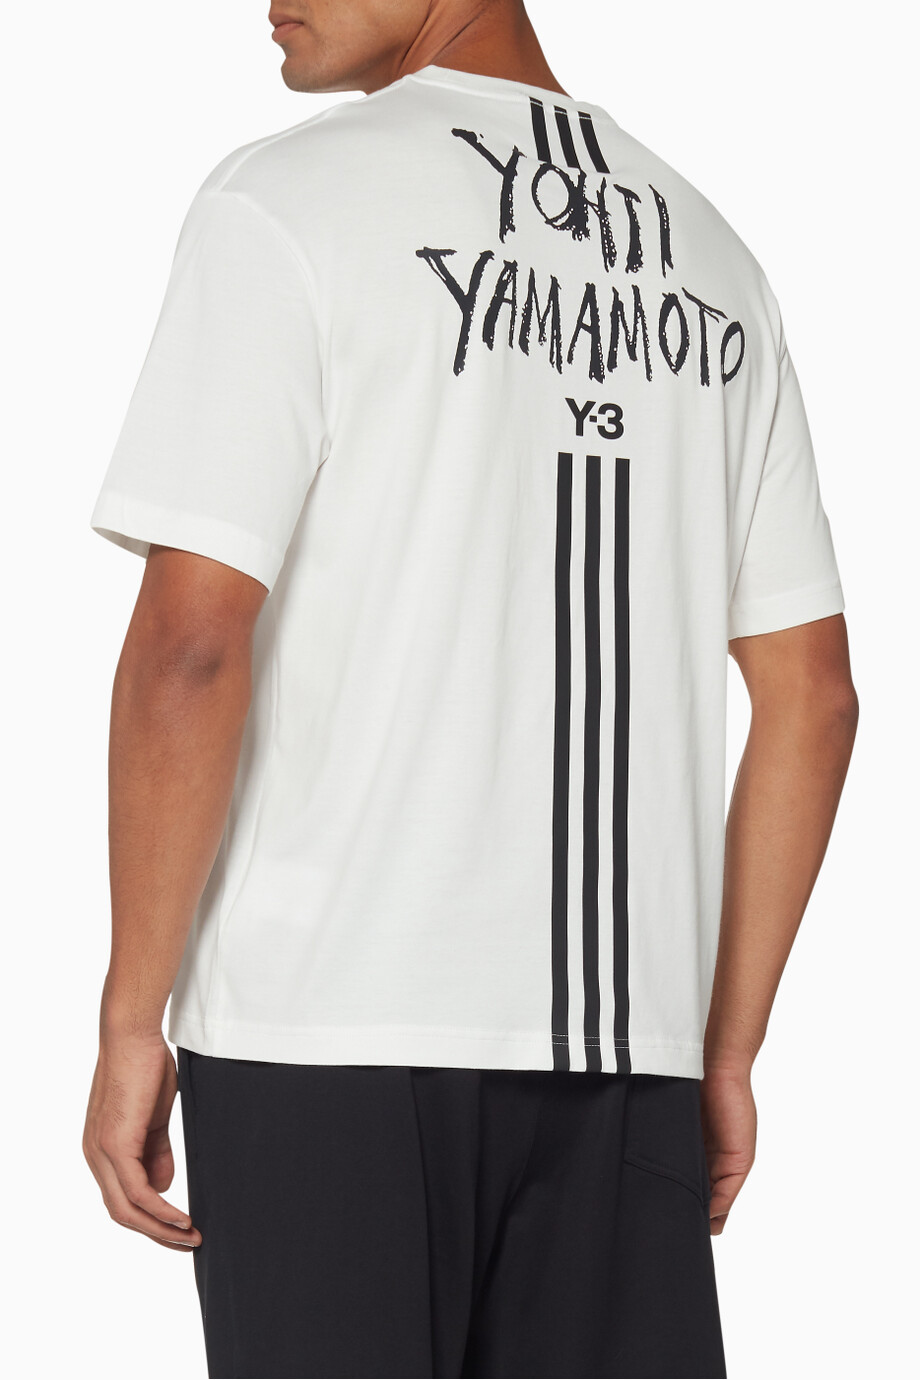 6f466995 Shop Y-3 White Signature Graphic T-Shirt for Men | Ounass